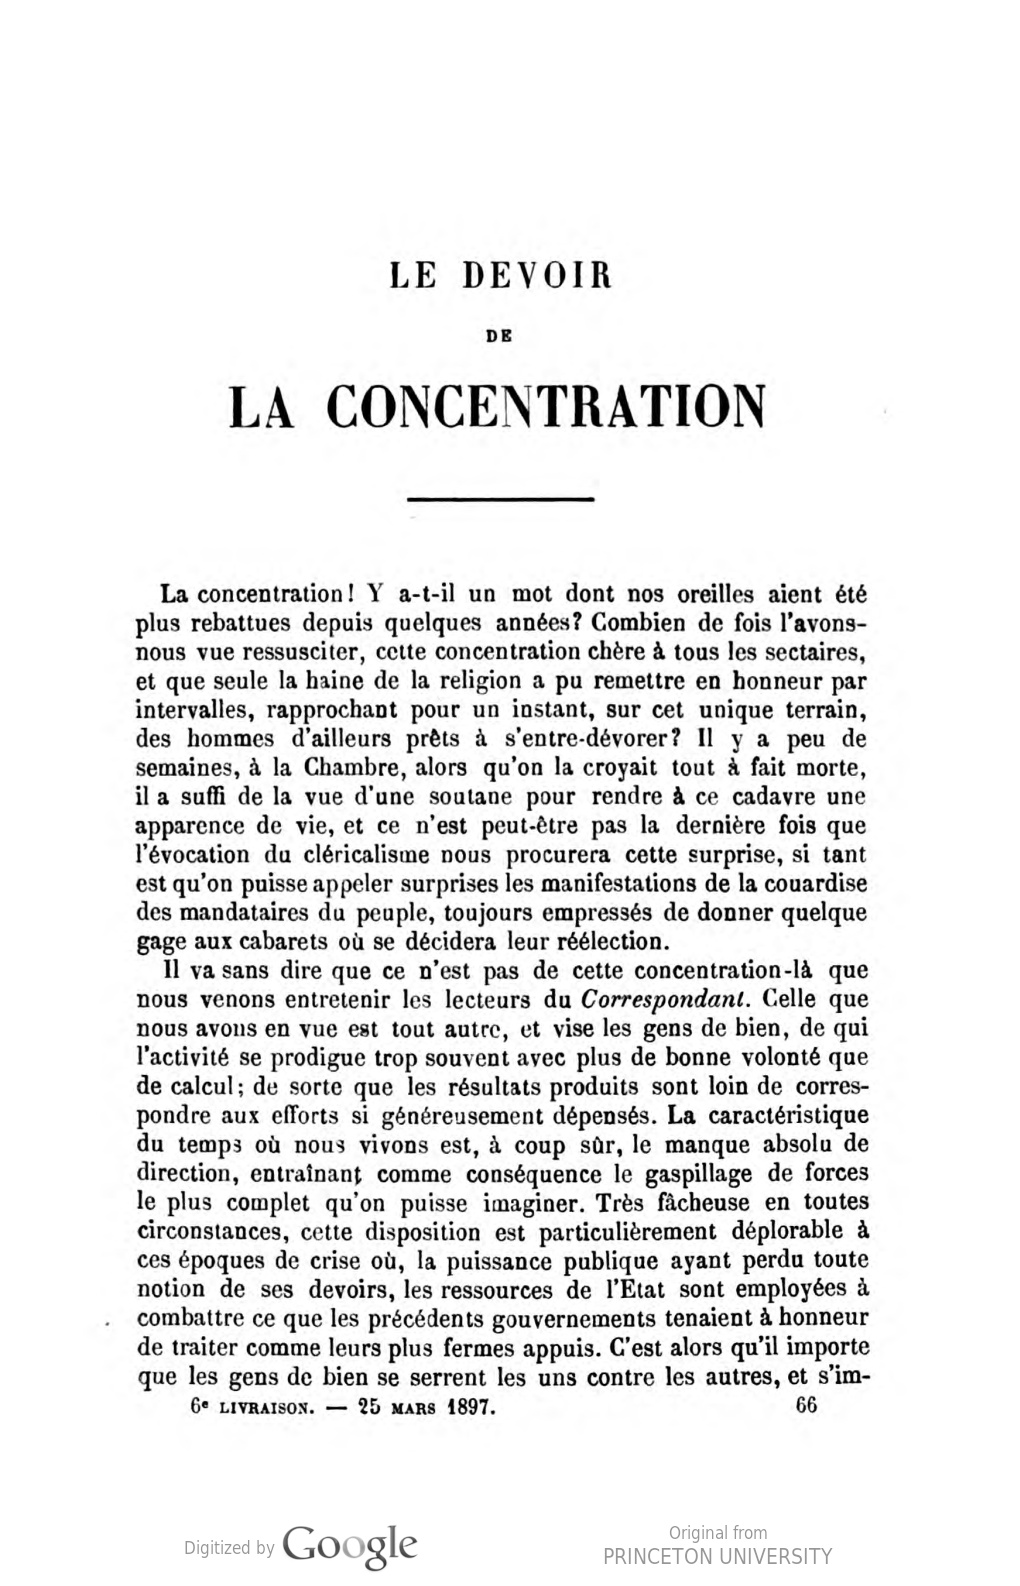 Le Devoir de la concentration, par Albert de Lapparent